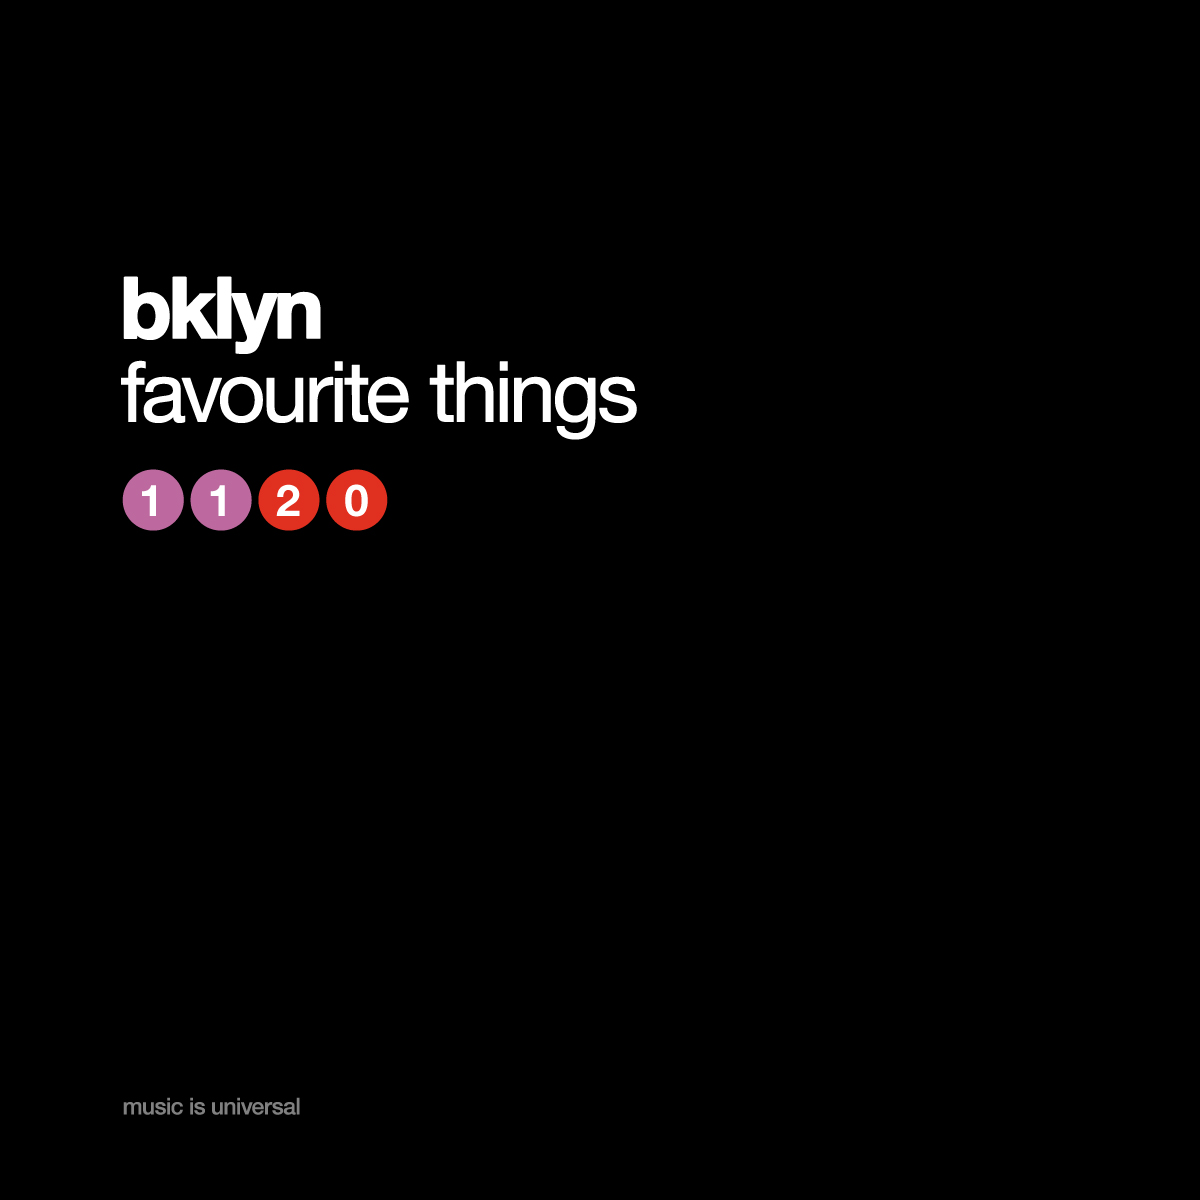 bklyn | favourite things 11.20